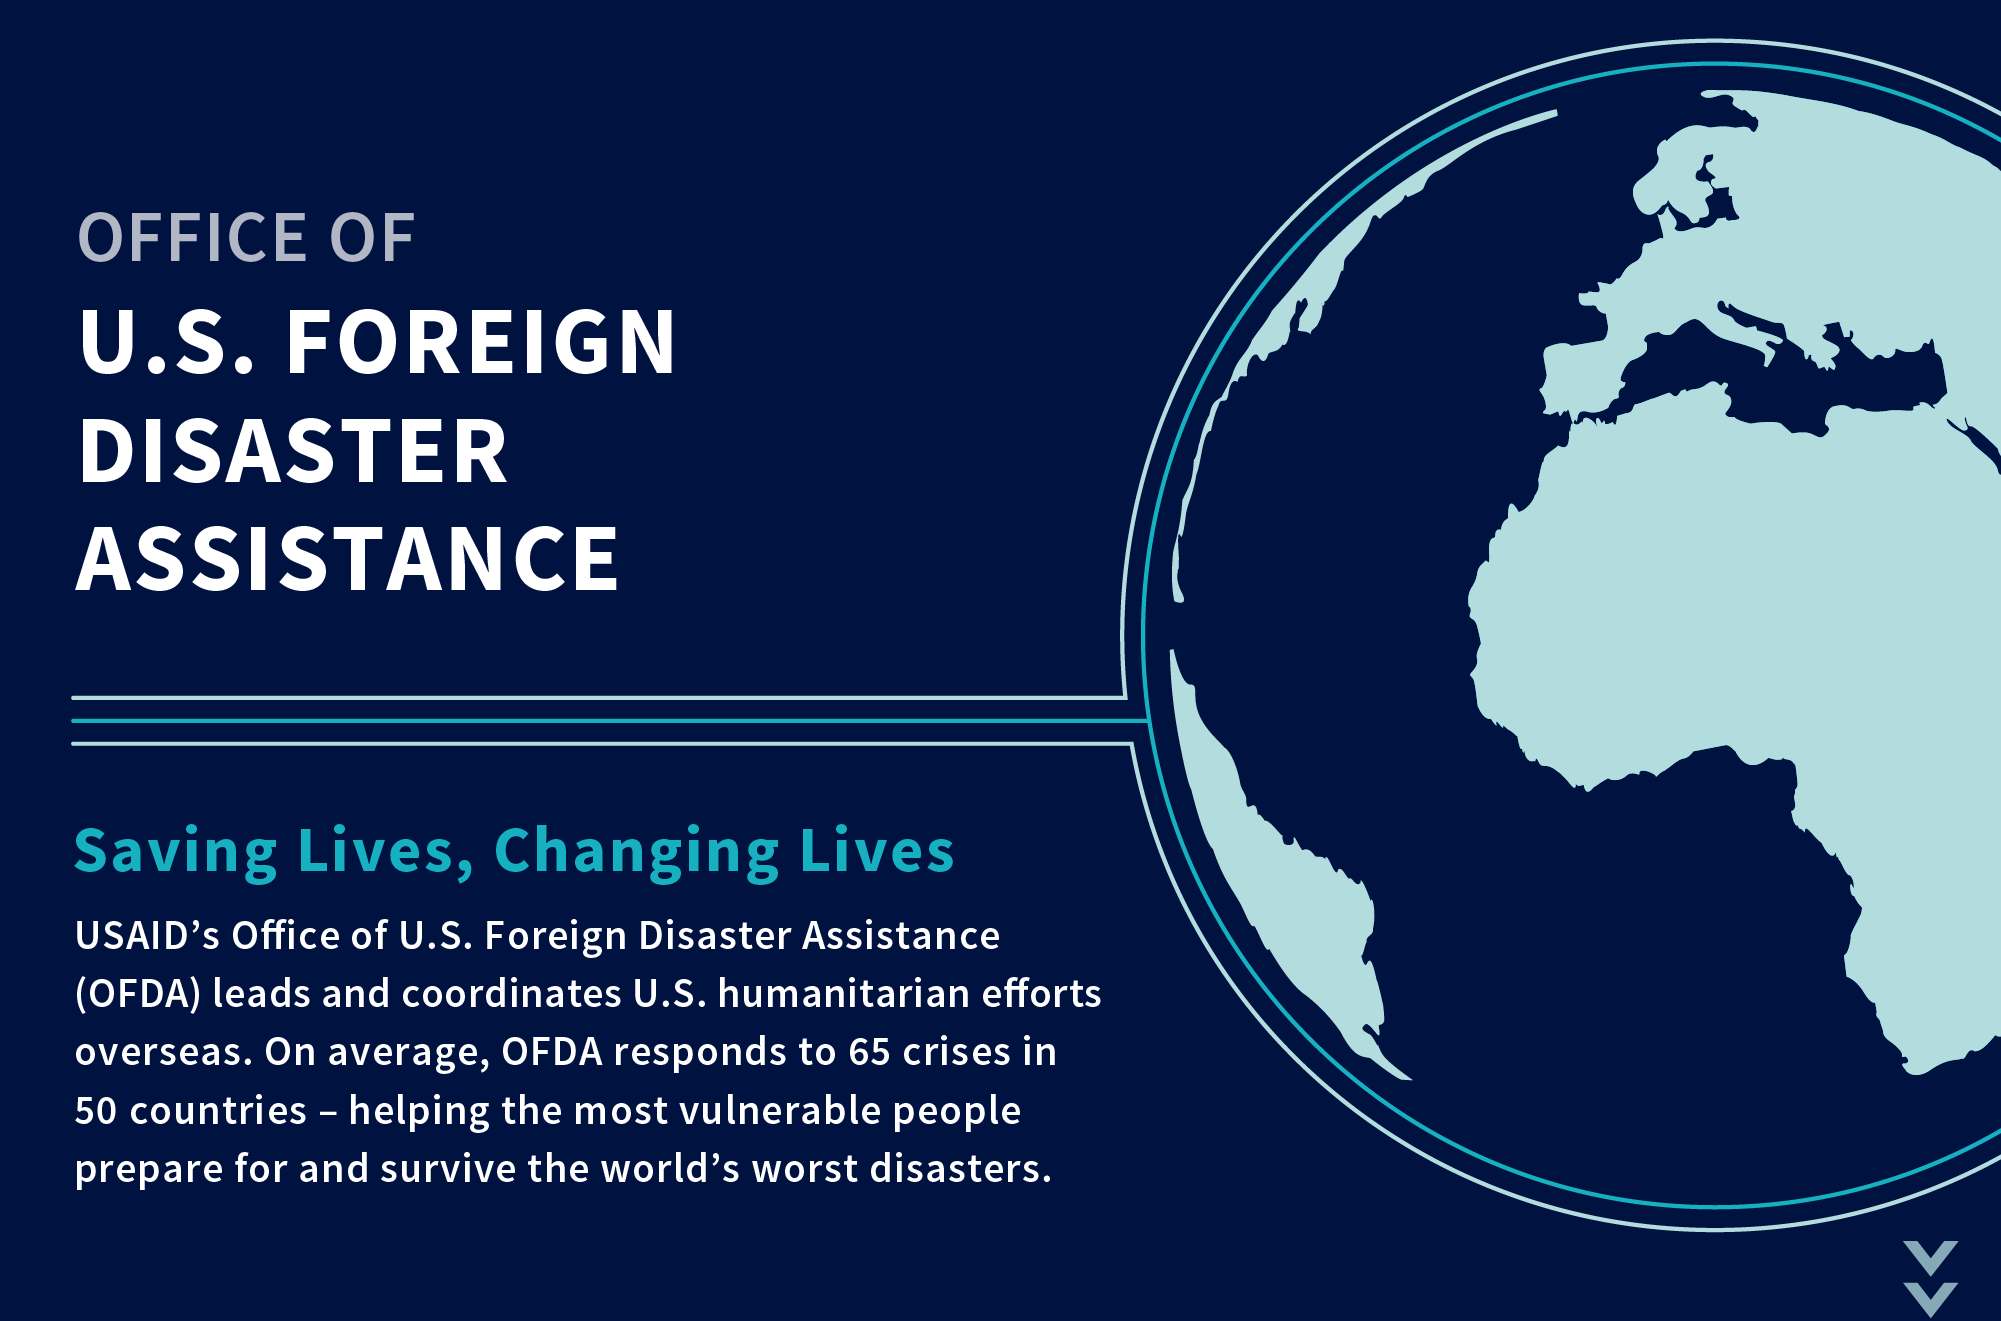 Office of U.S. Foreign Disaster Assistance. Saving Lives, Changing Lives. USAID's Office of Foreign Disaster Assistance (OFDA) leads and coordinates U.S. humanitarian efforts overseas. On average, OFDA responds to 65 crisises in 50 countries - helping the most vulnerable people prepare for and survive the world's worst disasters